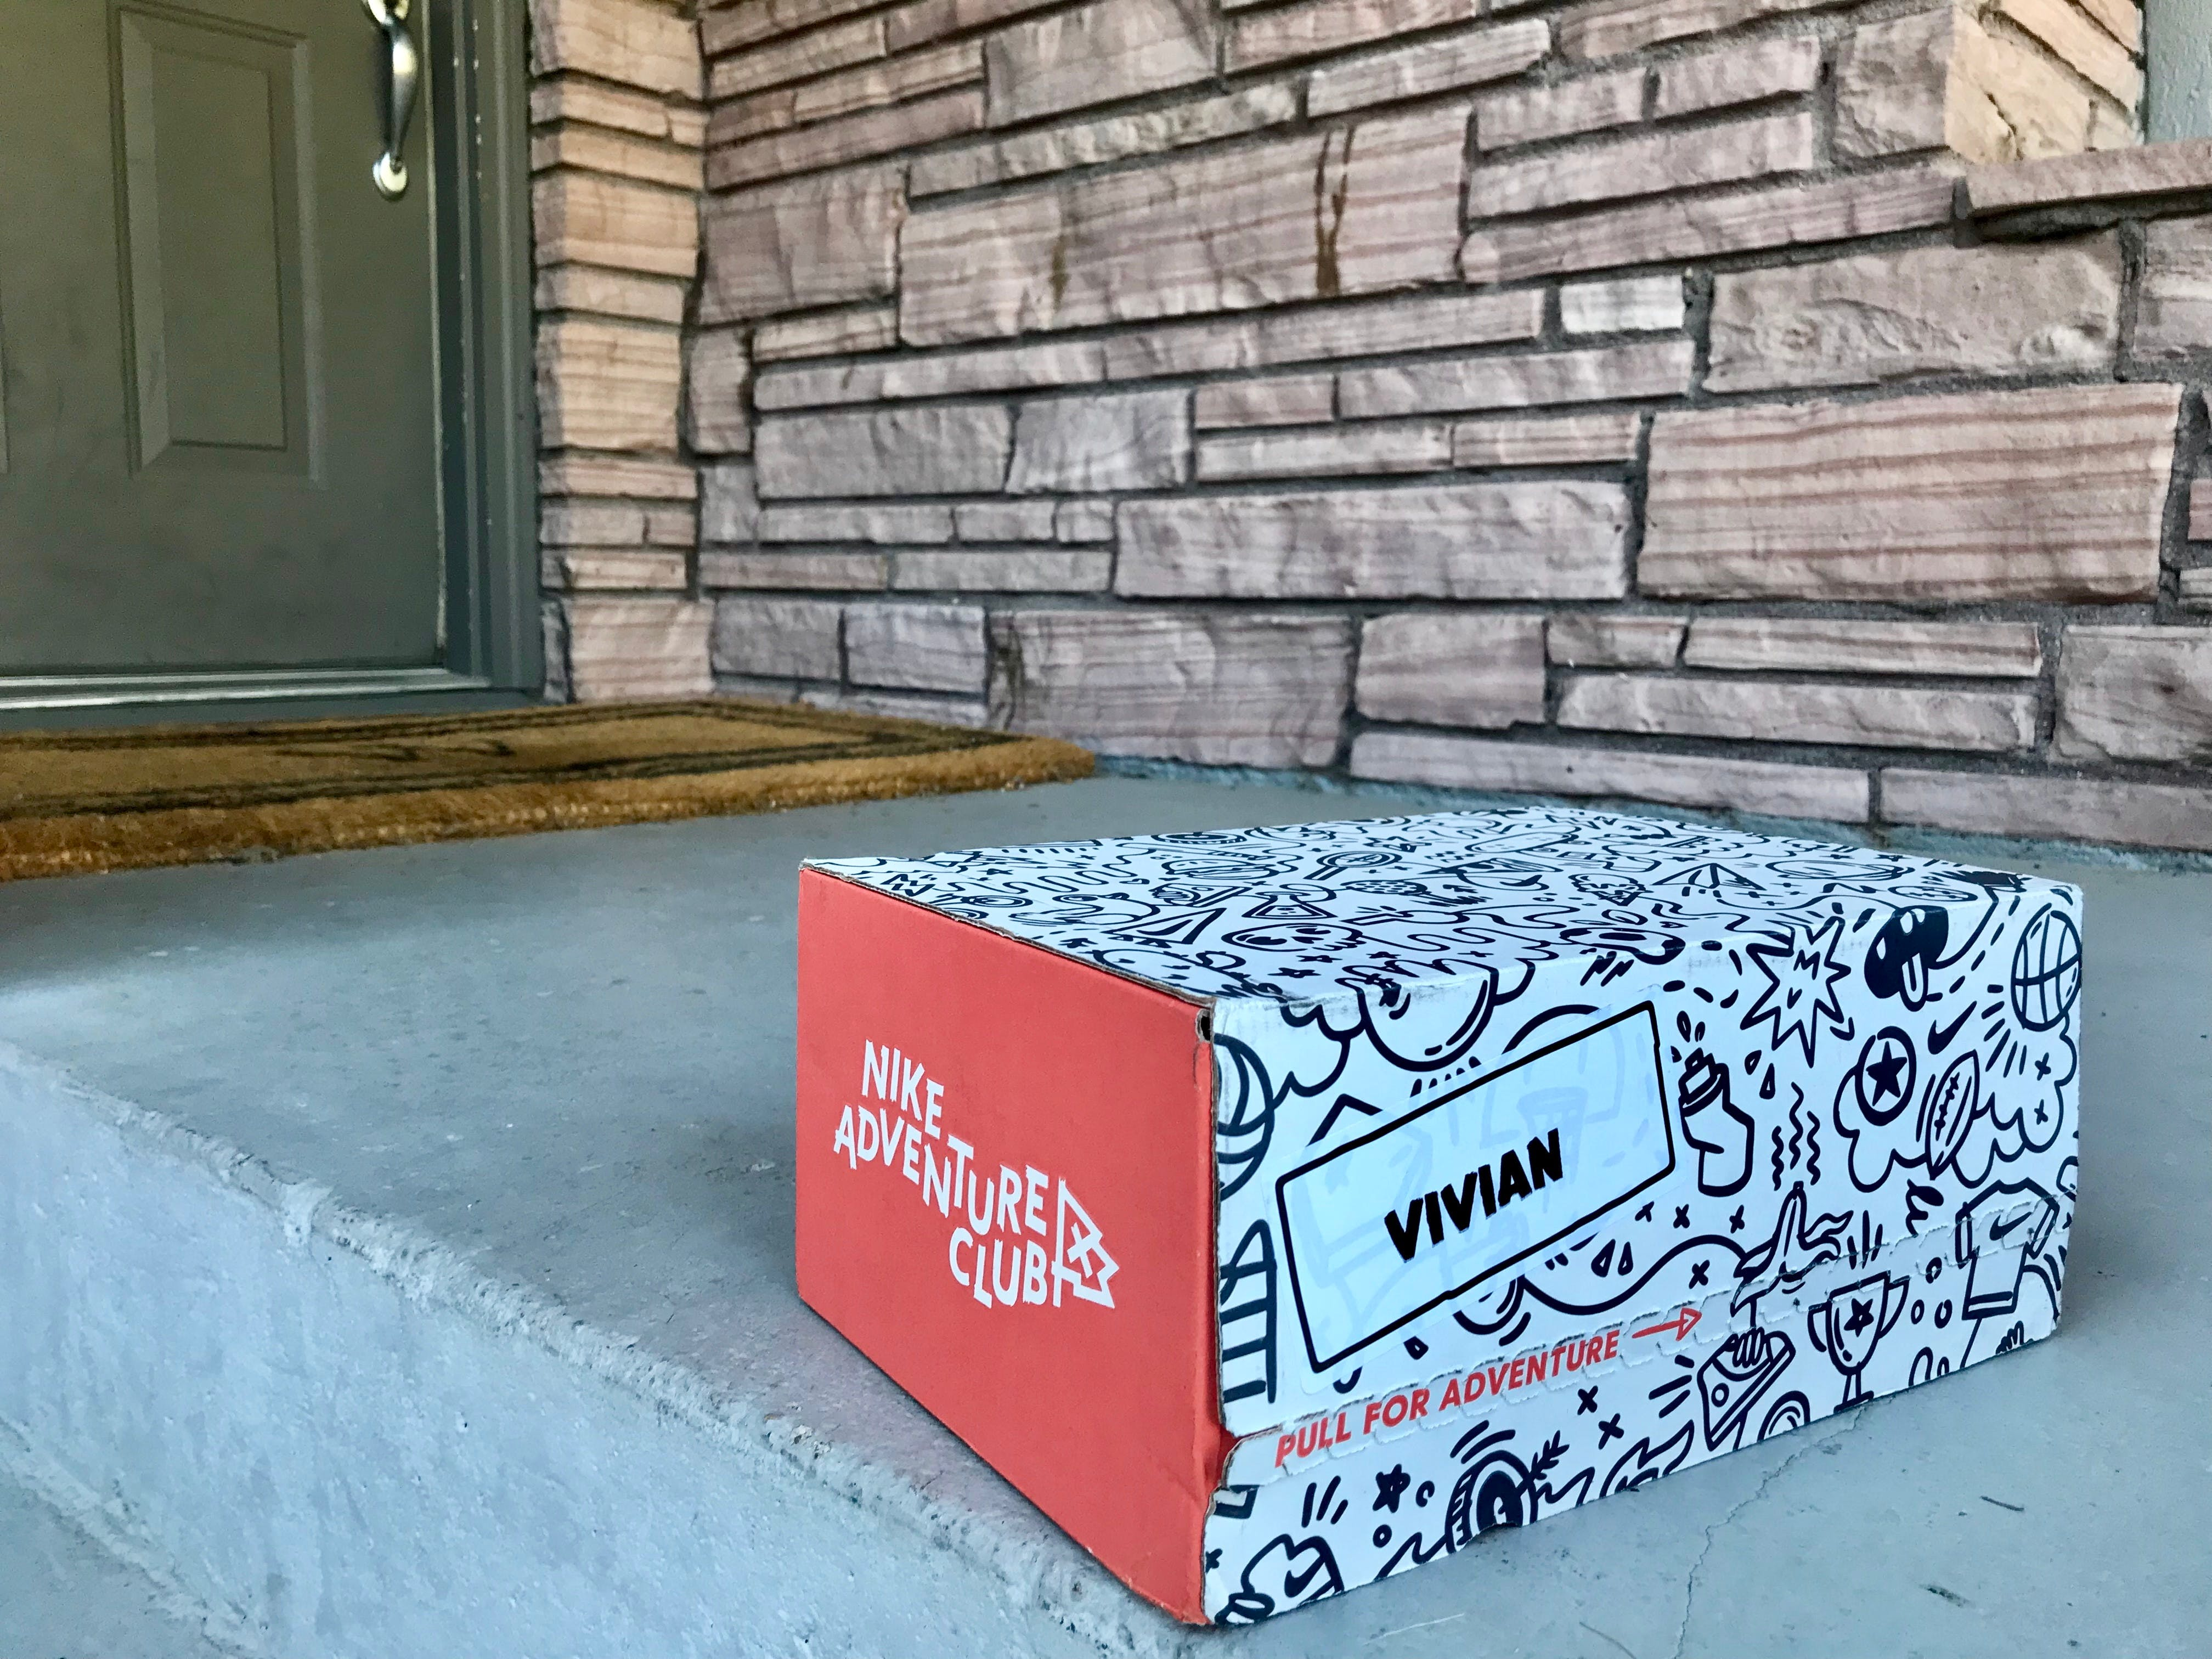 Nike Adventure Club Review: The